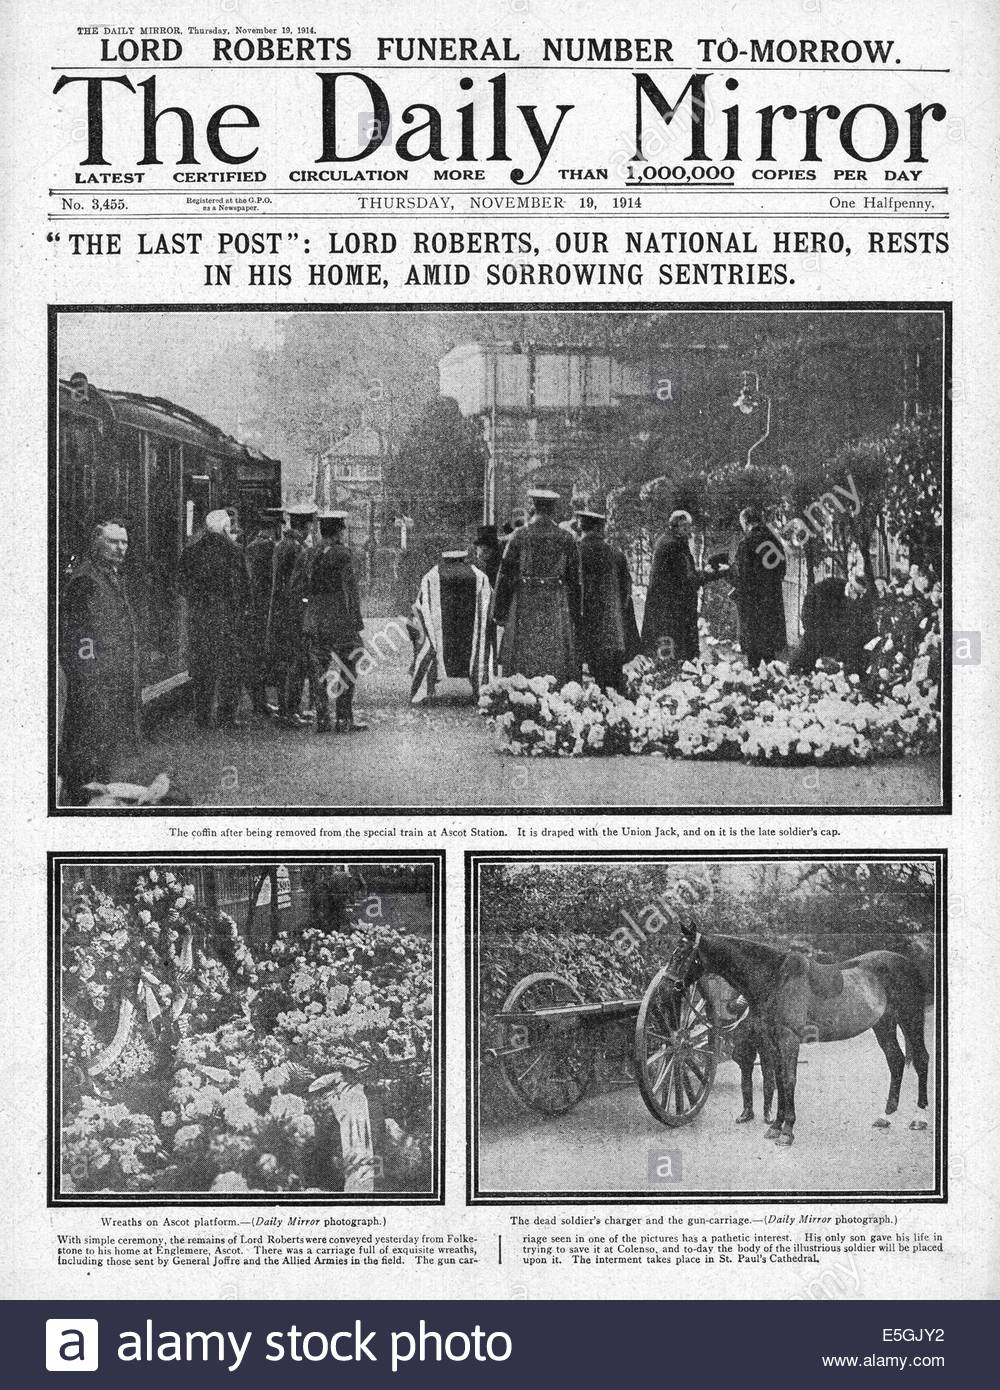 1914 Daily Mirror front page reporting Field Marshal Roberts Lord Roberts coffin arriving at Ascot Station before - Stock Image